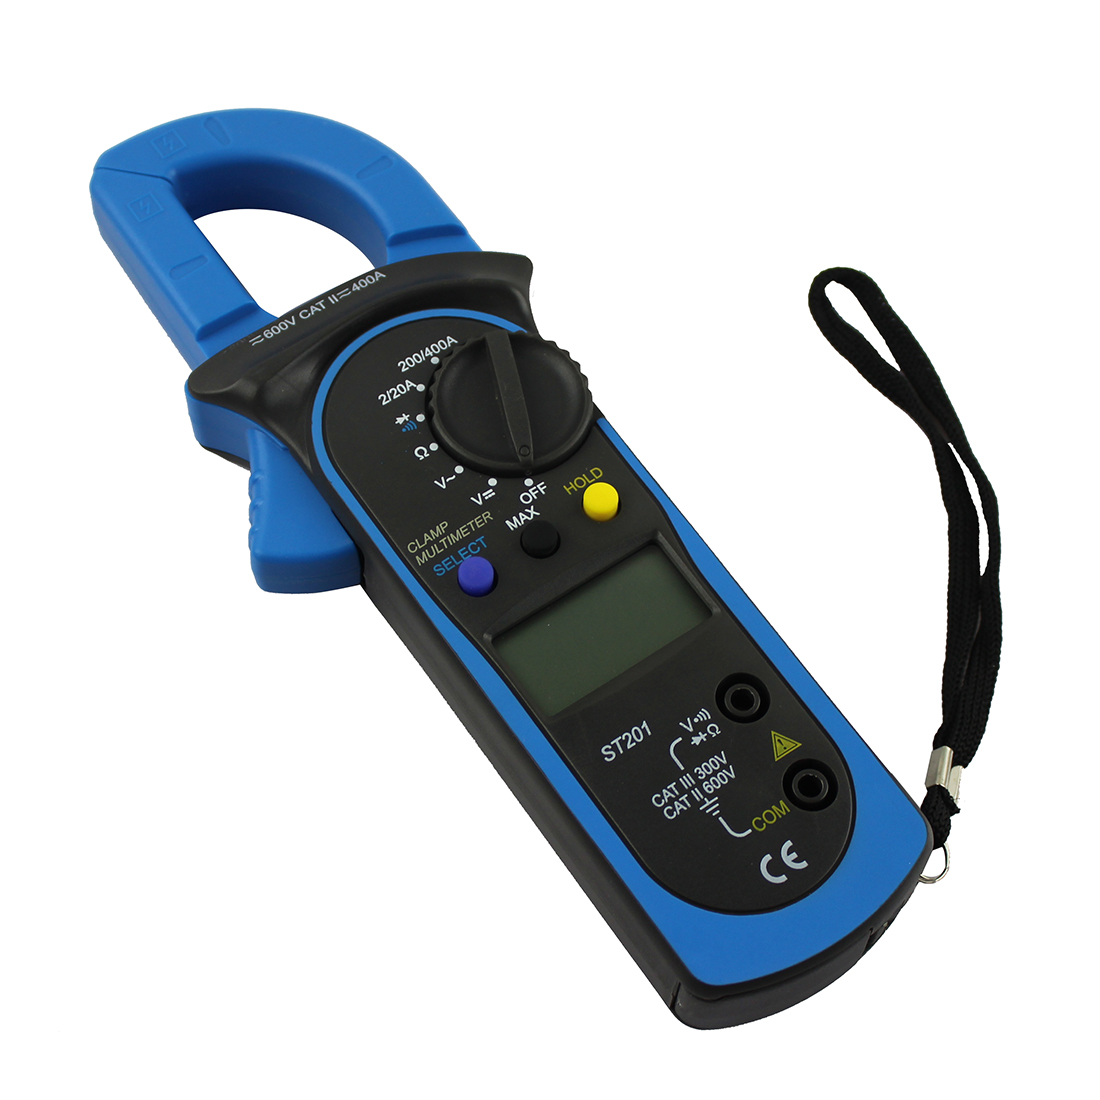 Clamp On Multimeters Current Probes : Digital clamp multimeter ohm amp meter ac dc current